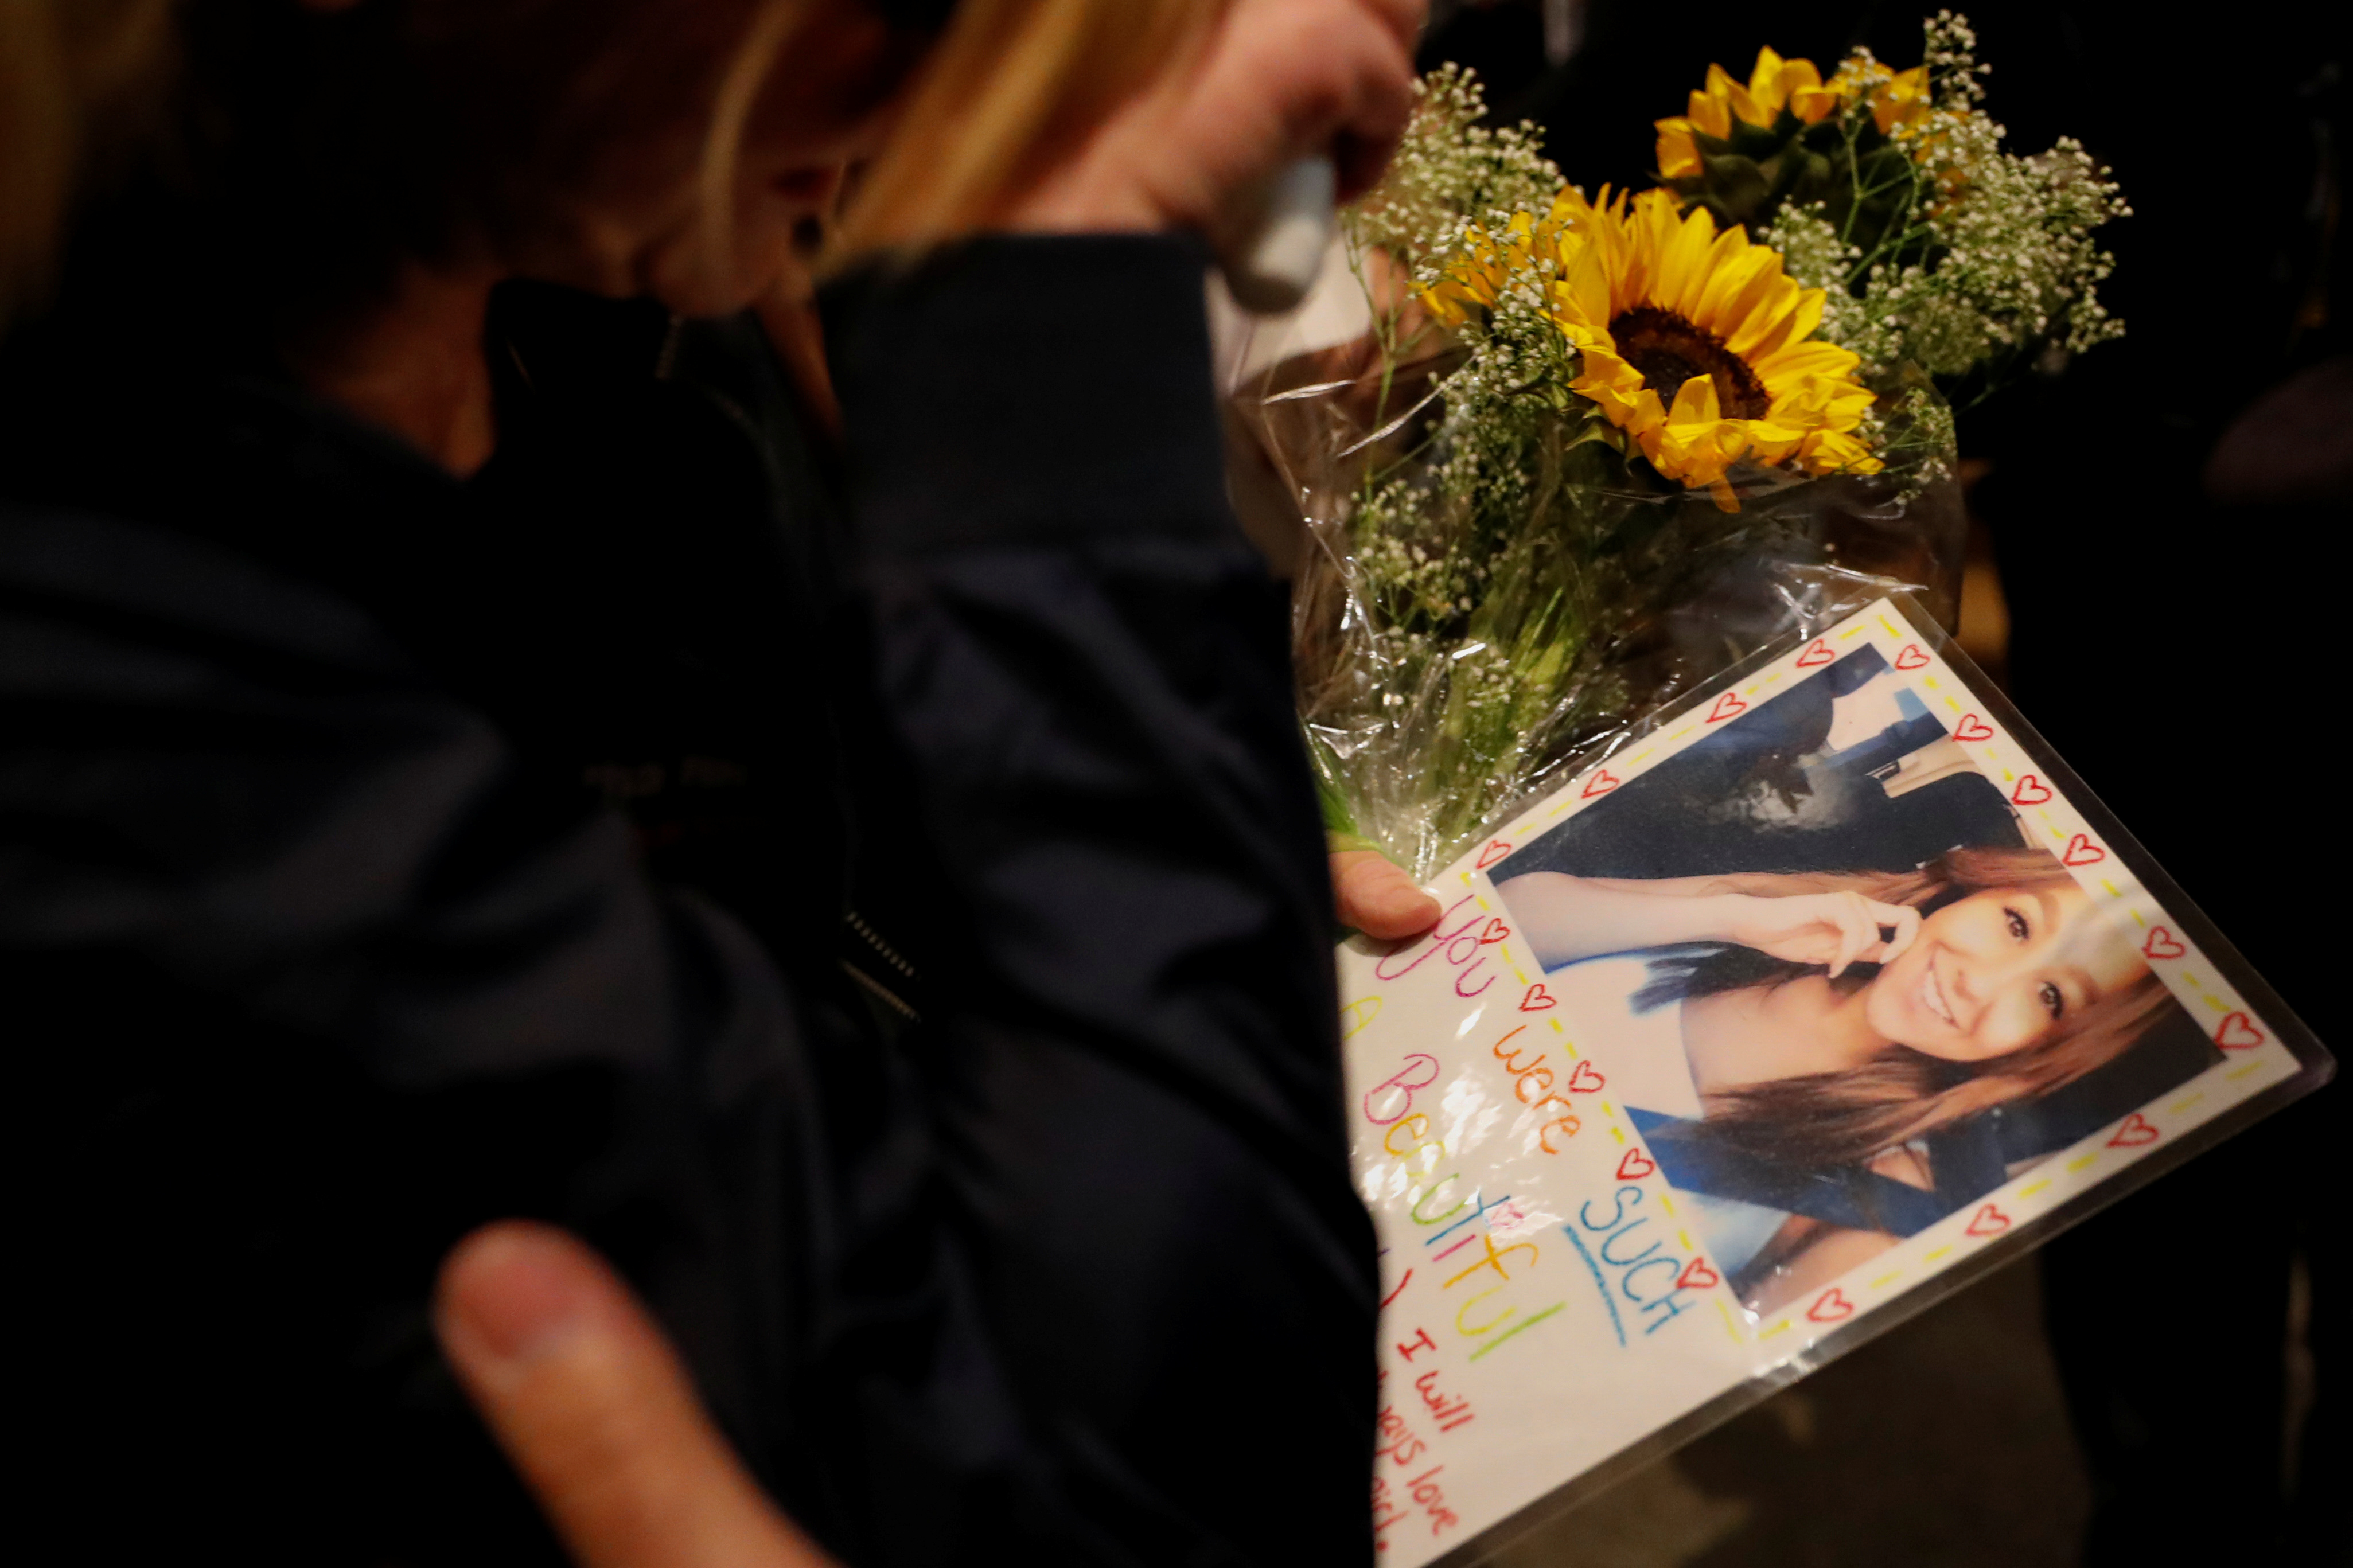 A mourner arrives with a picture of one of her friends at a vigil for the victims of the mass shooting, at the Thousand Oaks Civic Arts Plaza in Thousand Oaks, California, U.S., November 8, 2018. REUTERS/Mike Blake NO RESALES. NO ARCHIVES